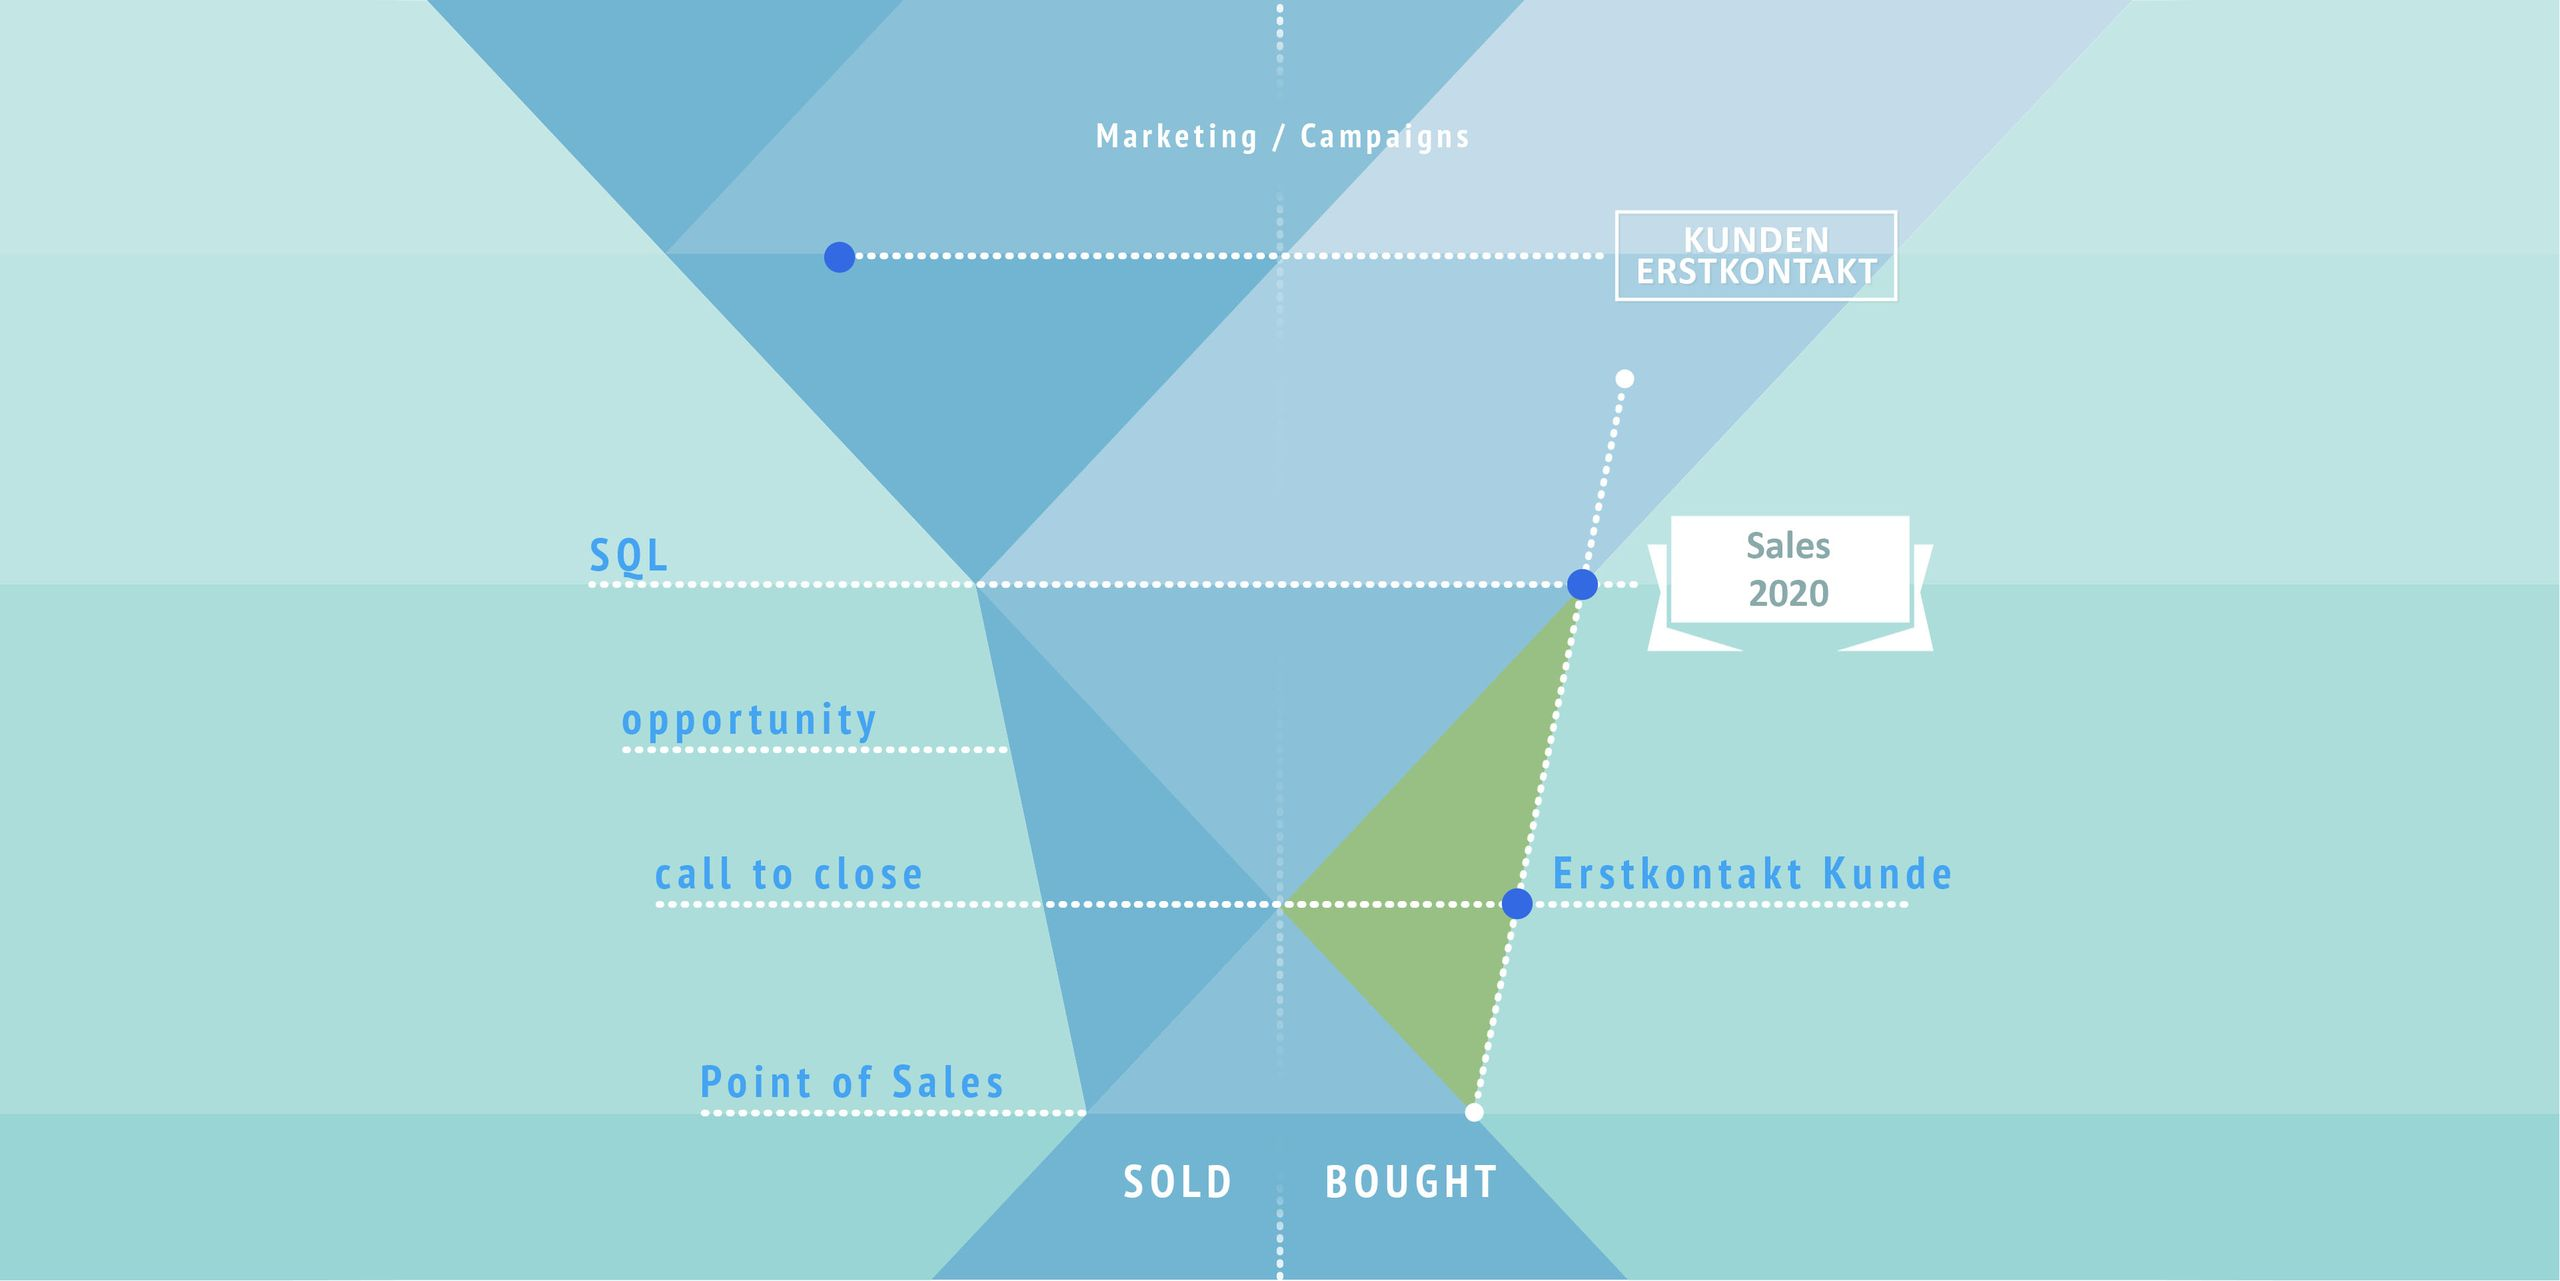 BM-Experts - Sales Funnel - Bought not sold - Die Digitalisierung des Vertriebs